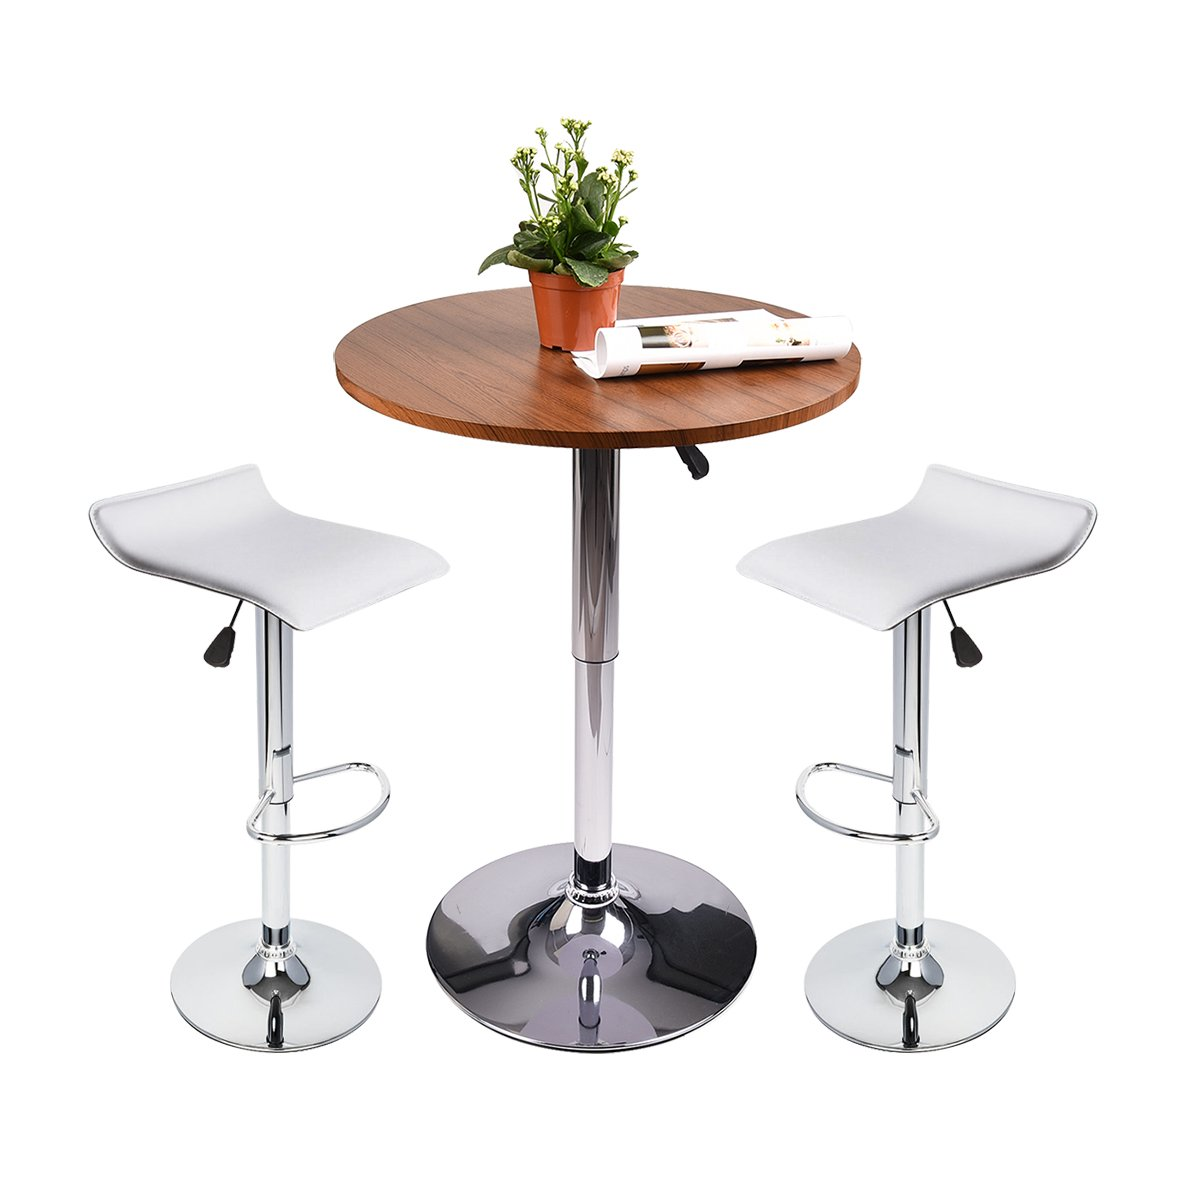 35 Inches Height Round Bar Table Adjustable Height Chrome Metal and Wood Cocktail Pub Table MDF Top 360°Swivel Furniture (Black) PULUOMIS